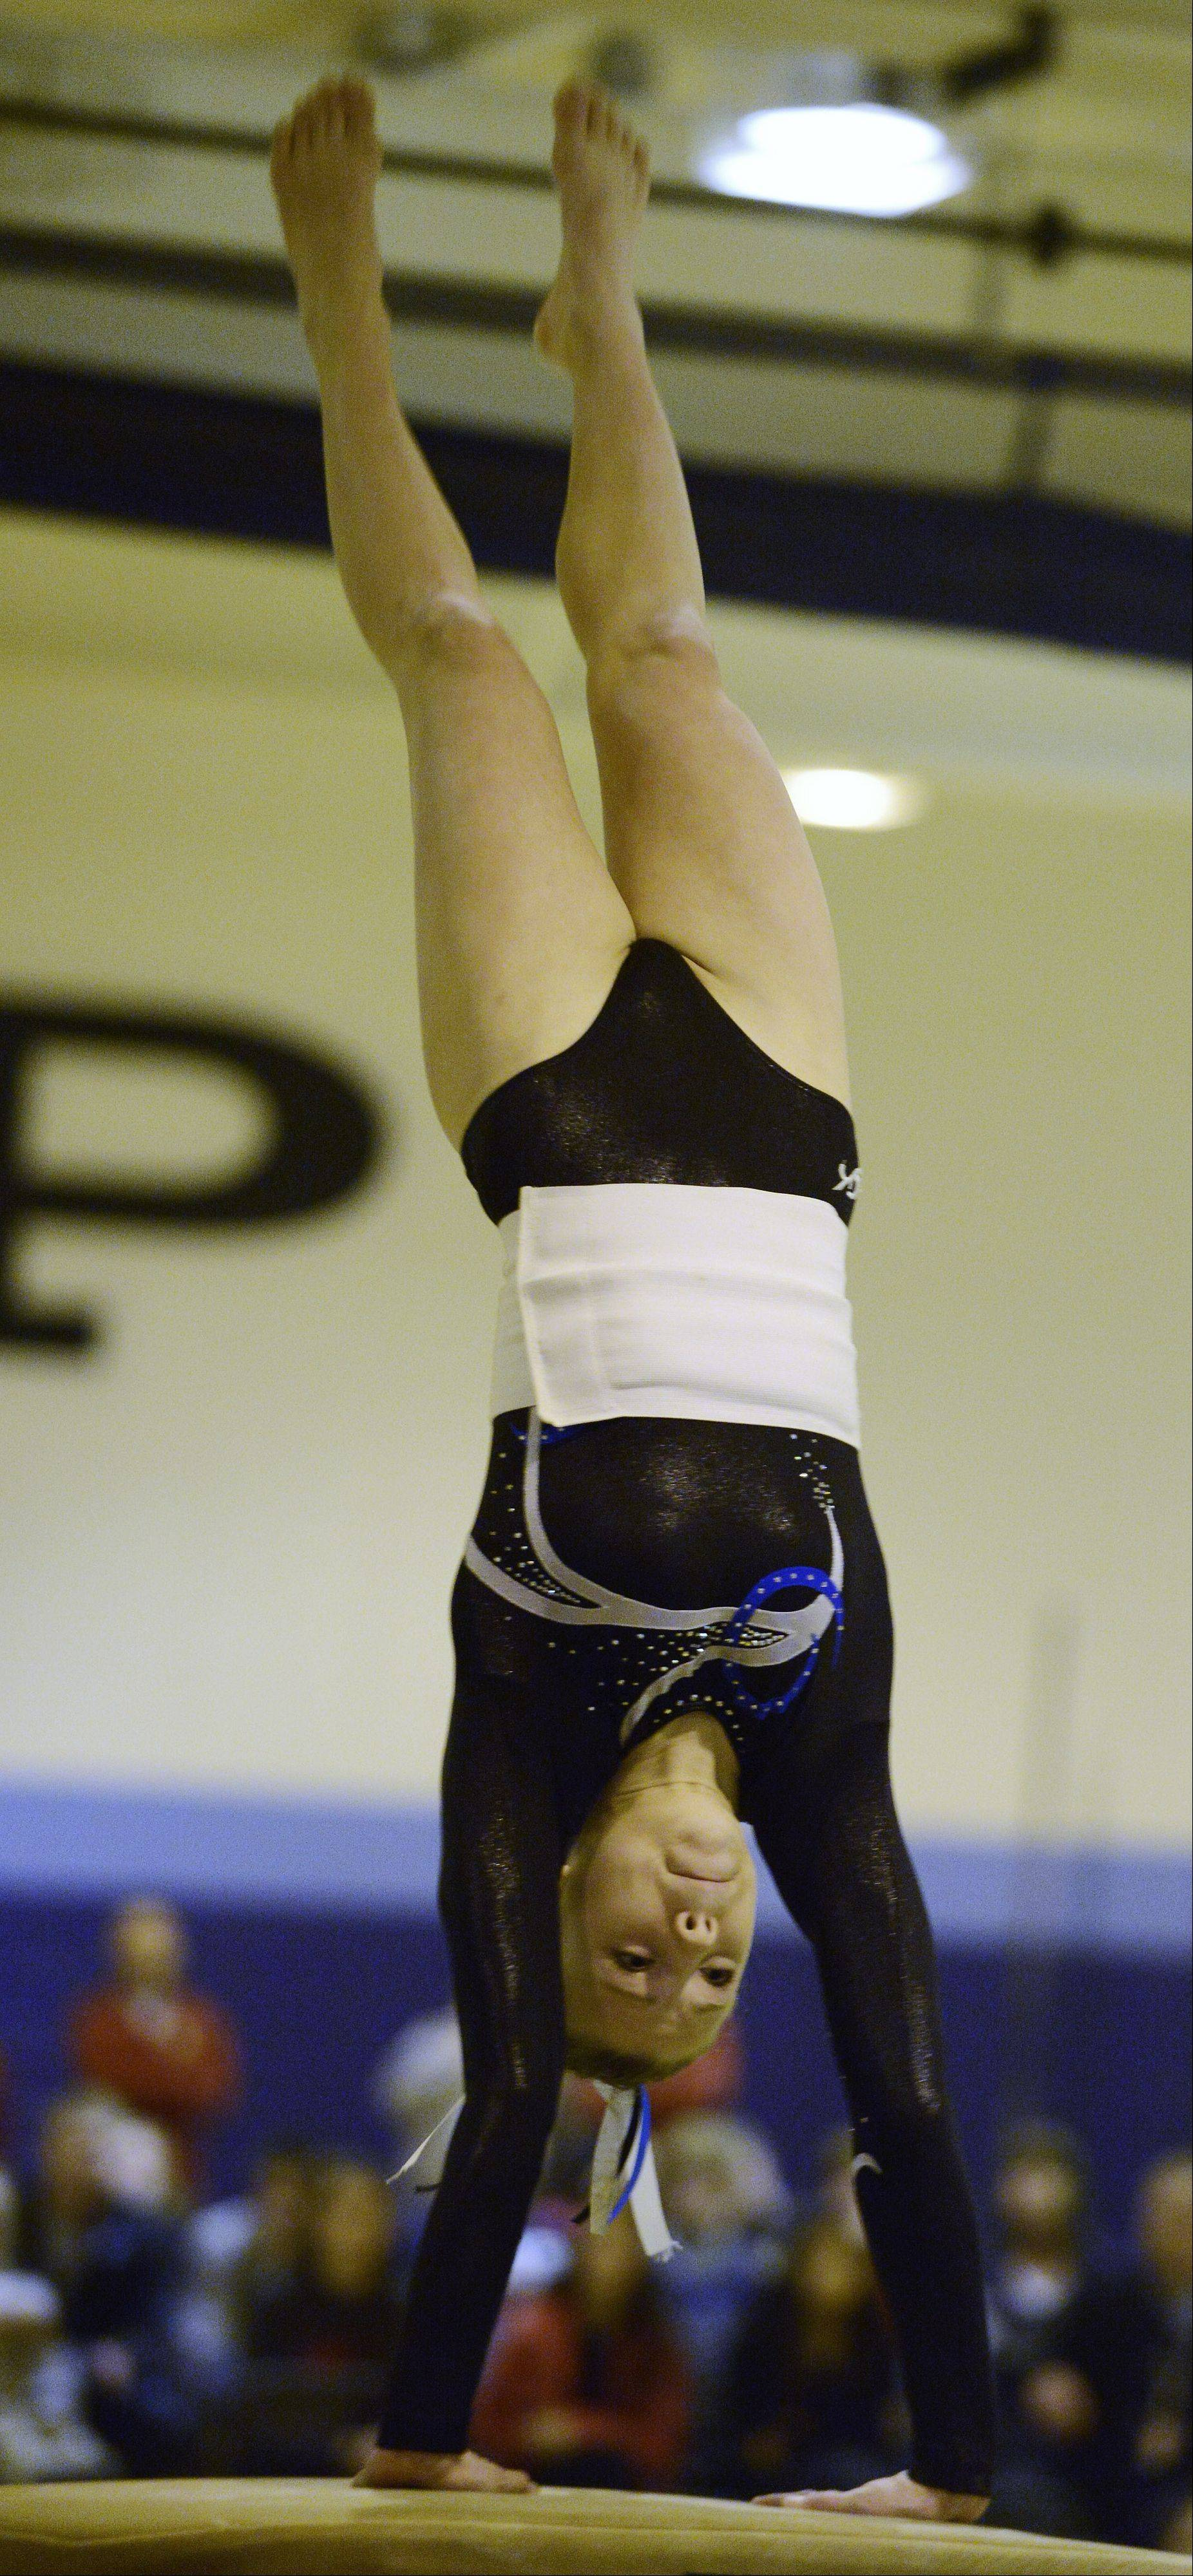 Prospect's Olivia Gonzalez competes on the vault during Tuesday's regional meet at Prospect.